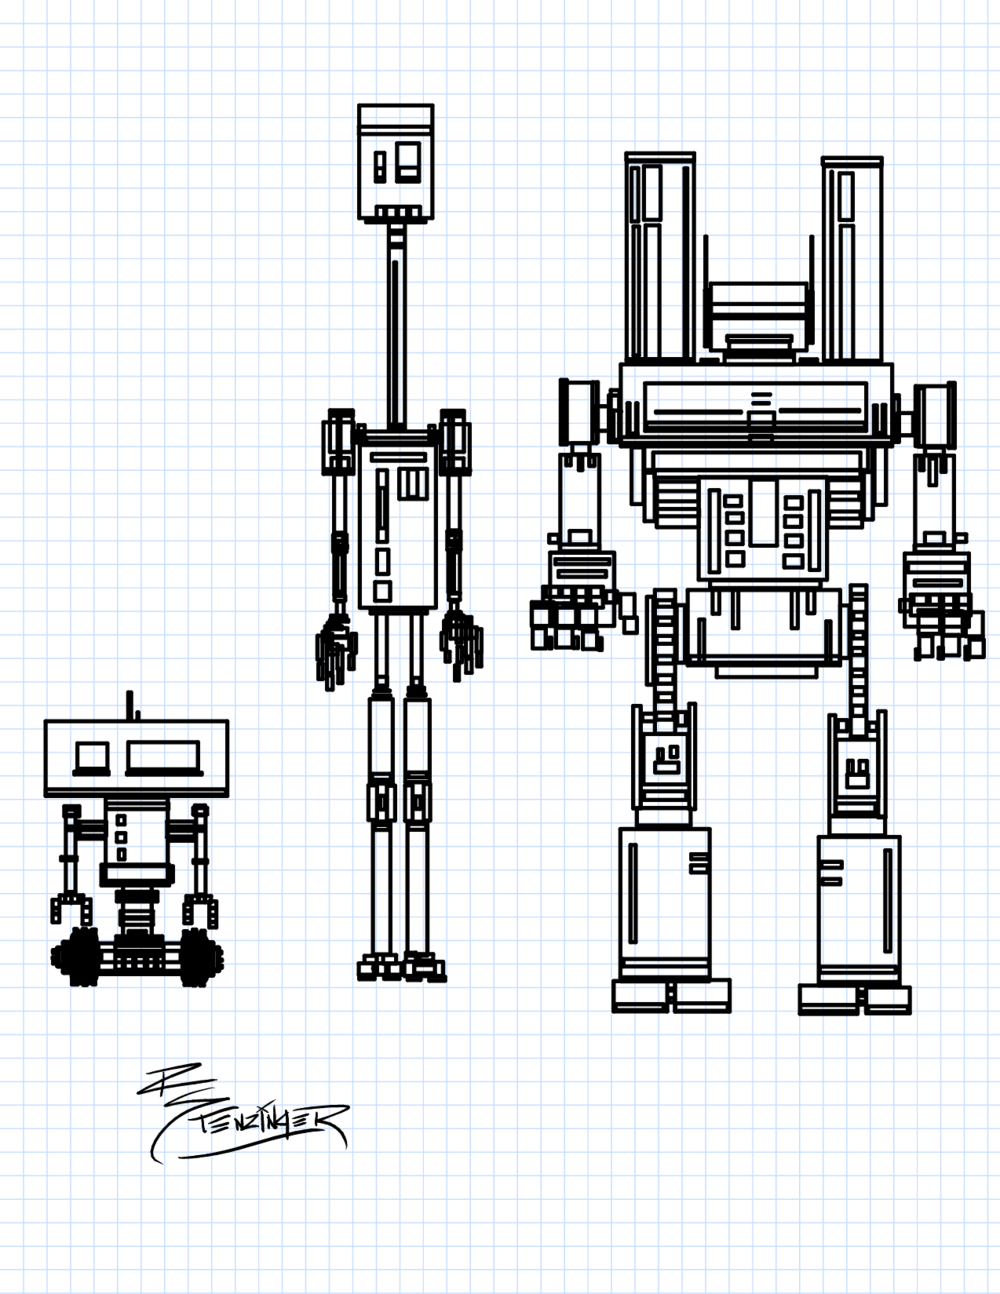 These three robots began my curiosity with rectangle based drawing.